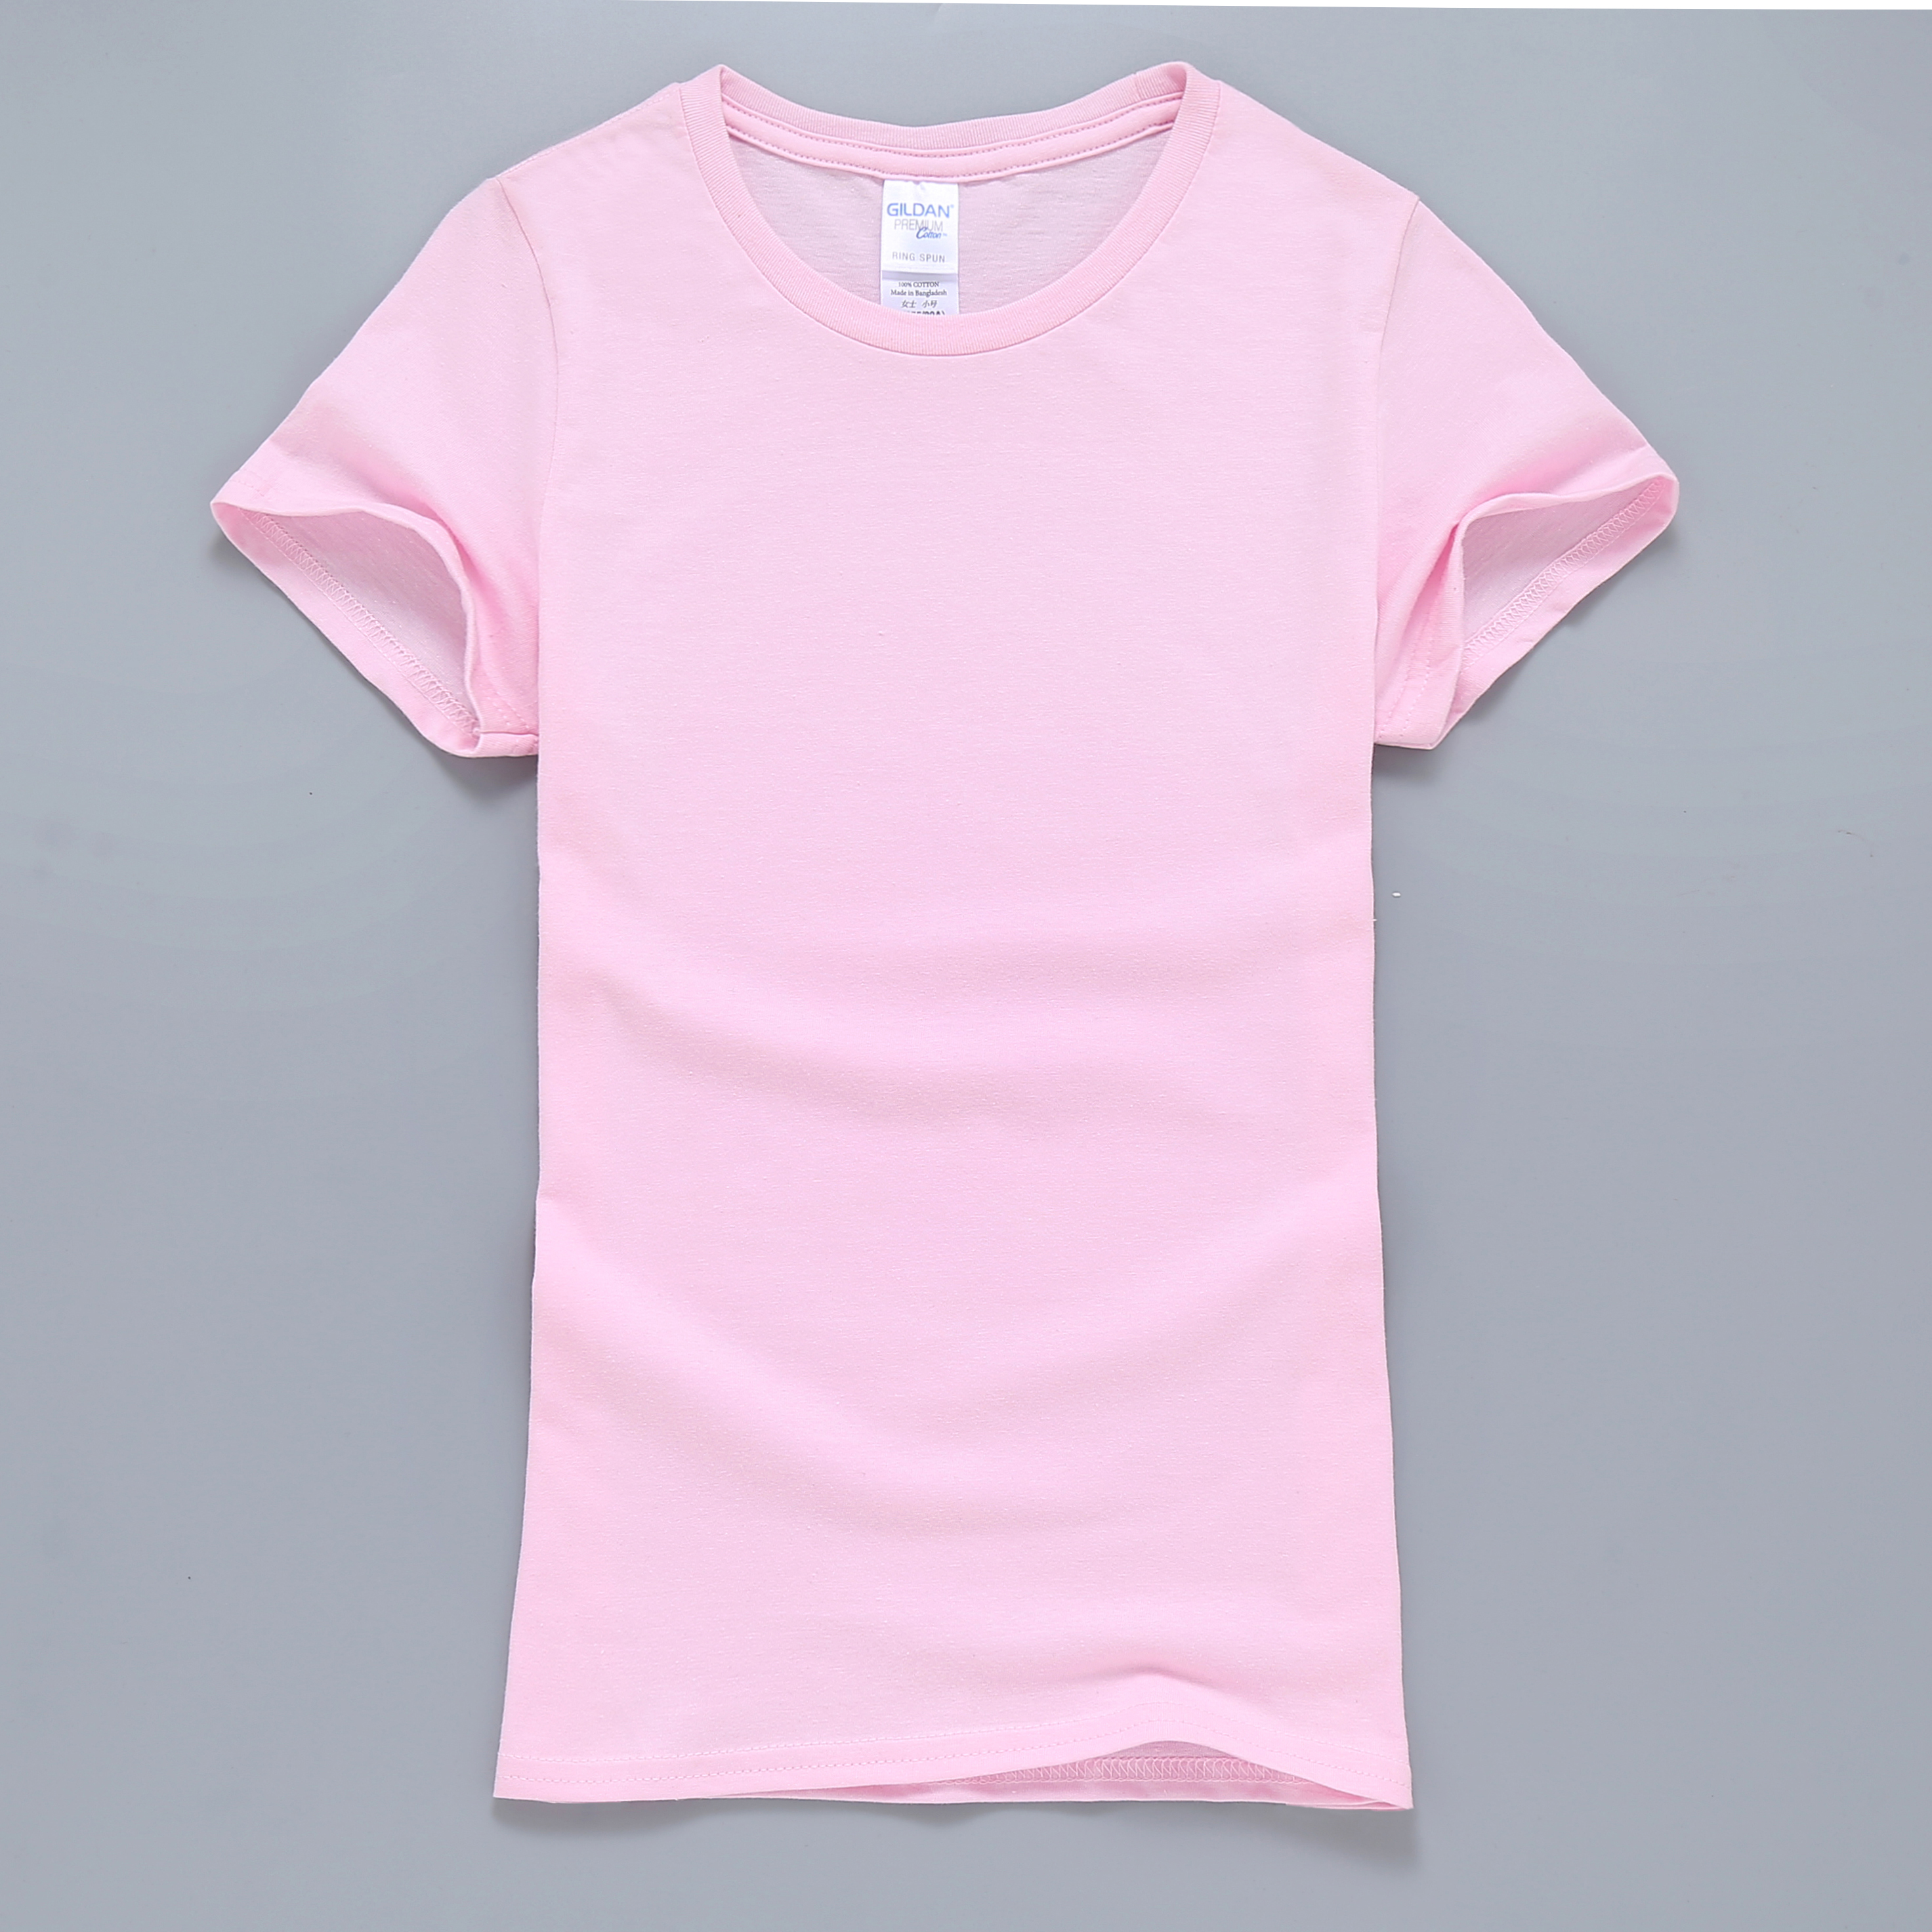 Compare Prices on Pink Ladies T Shirt- Online Shopping/Buy Low ...